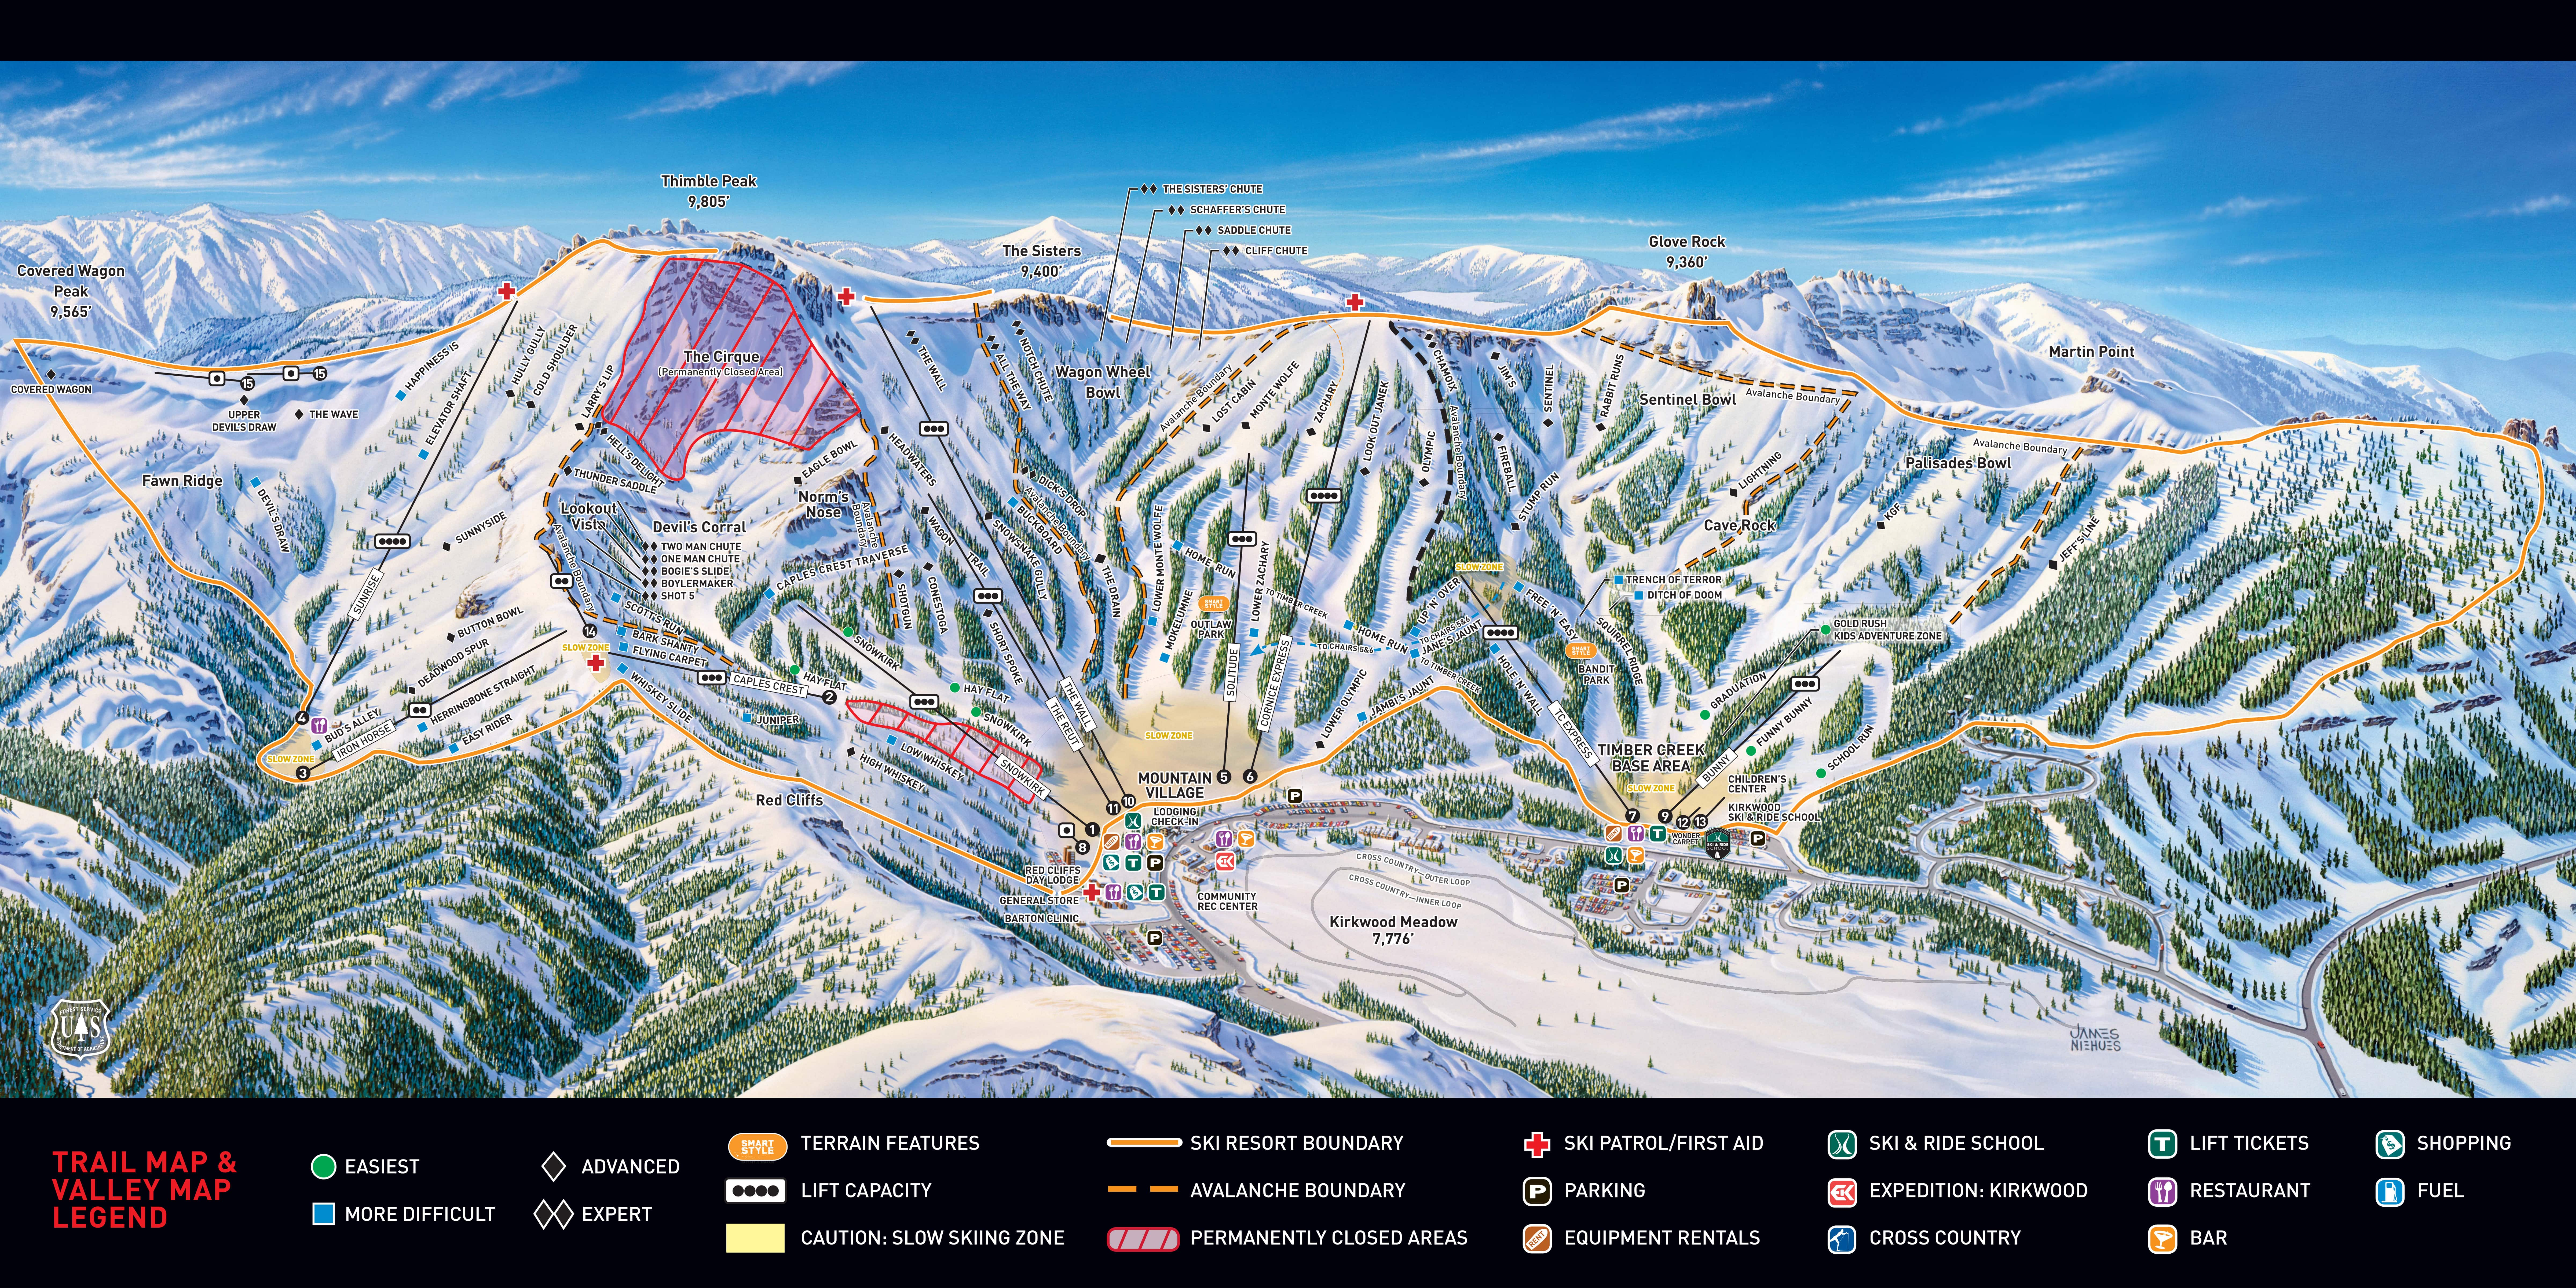 lake tahoe piste map Kirkwood Lake Tahoe Ski Trail Map Free Downloadable Piste Maps lake tahoe piste map